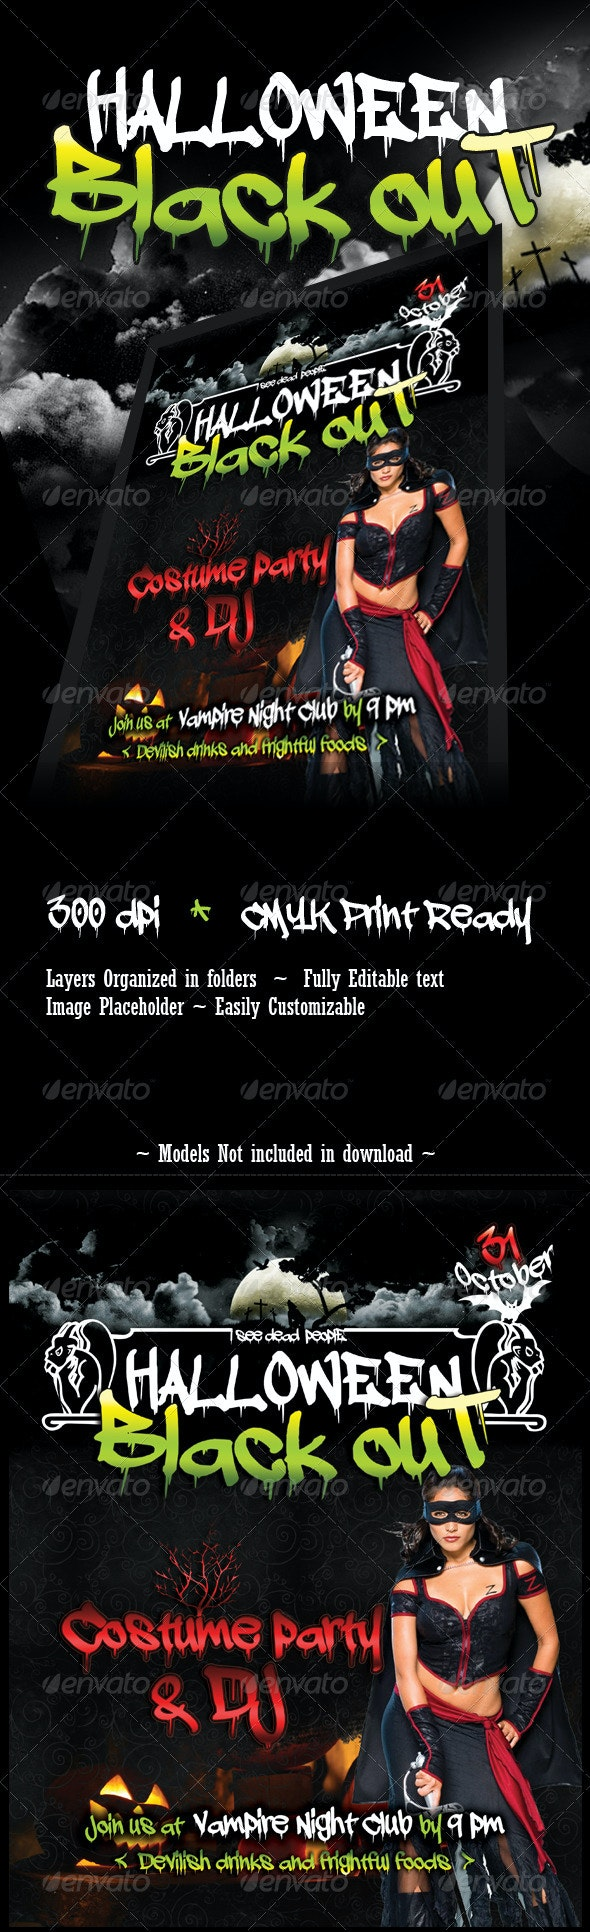 Halloween Blackout Flyer Template - Clubs & Parties Events